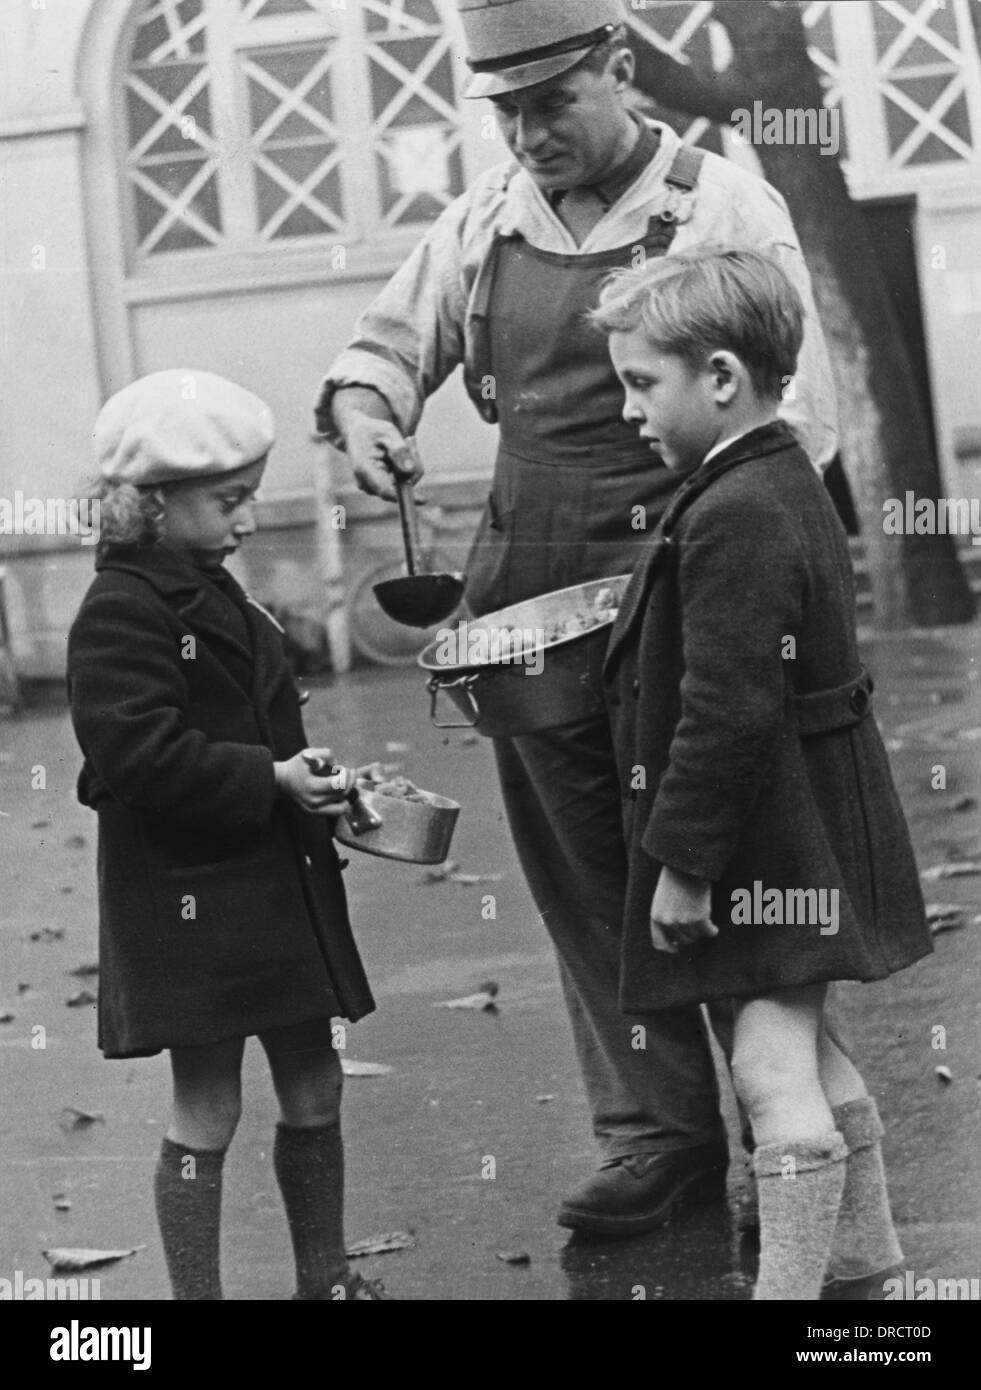 French civilians WWII - Stock Image